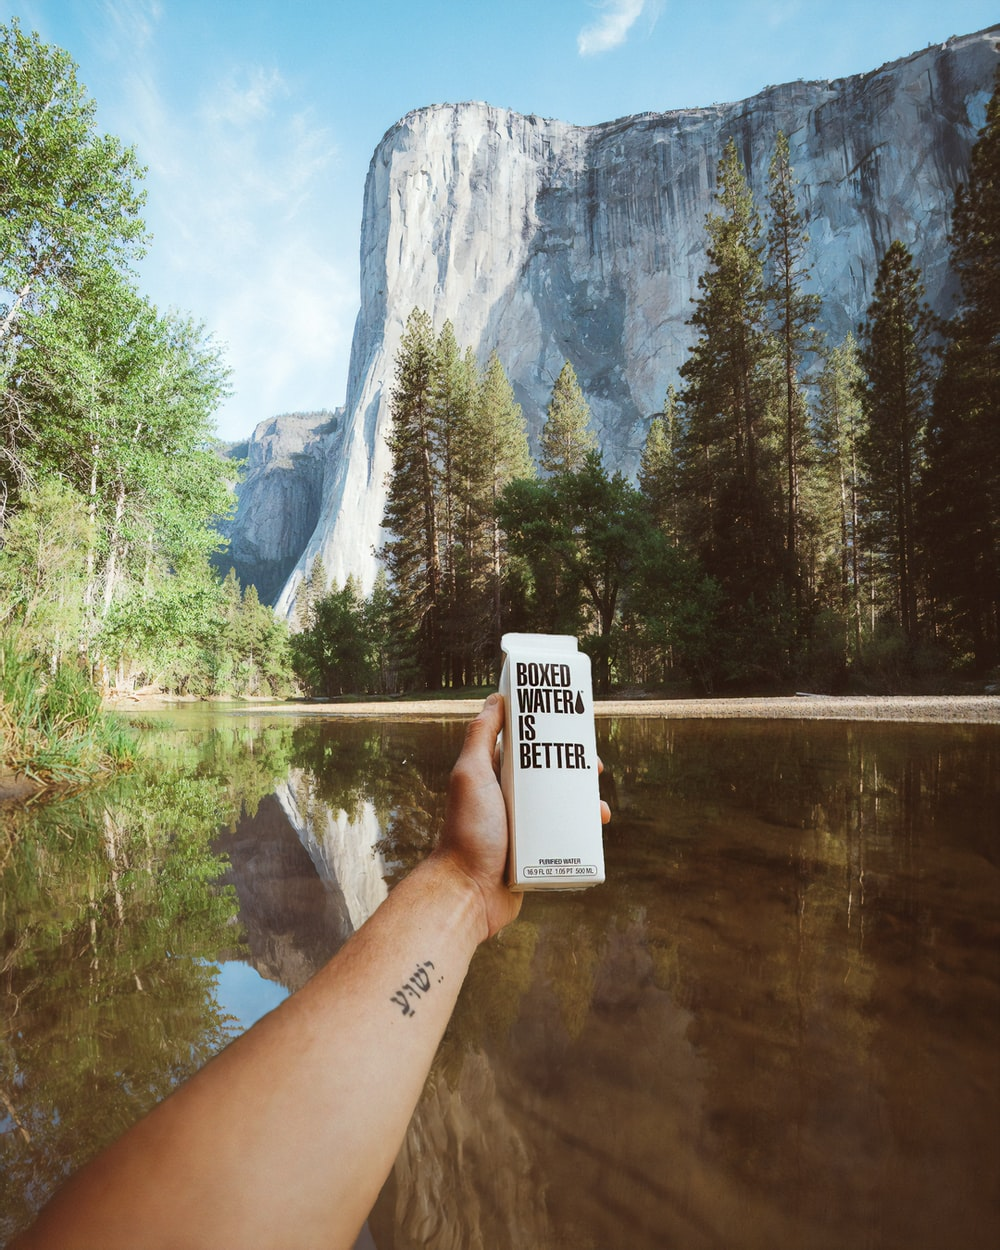 A person holding a carton of Boxed Water in their hand in front of El Capitan in Yosemite